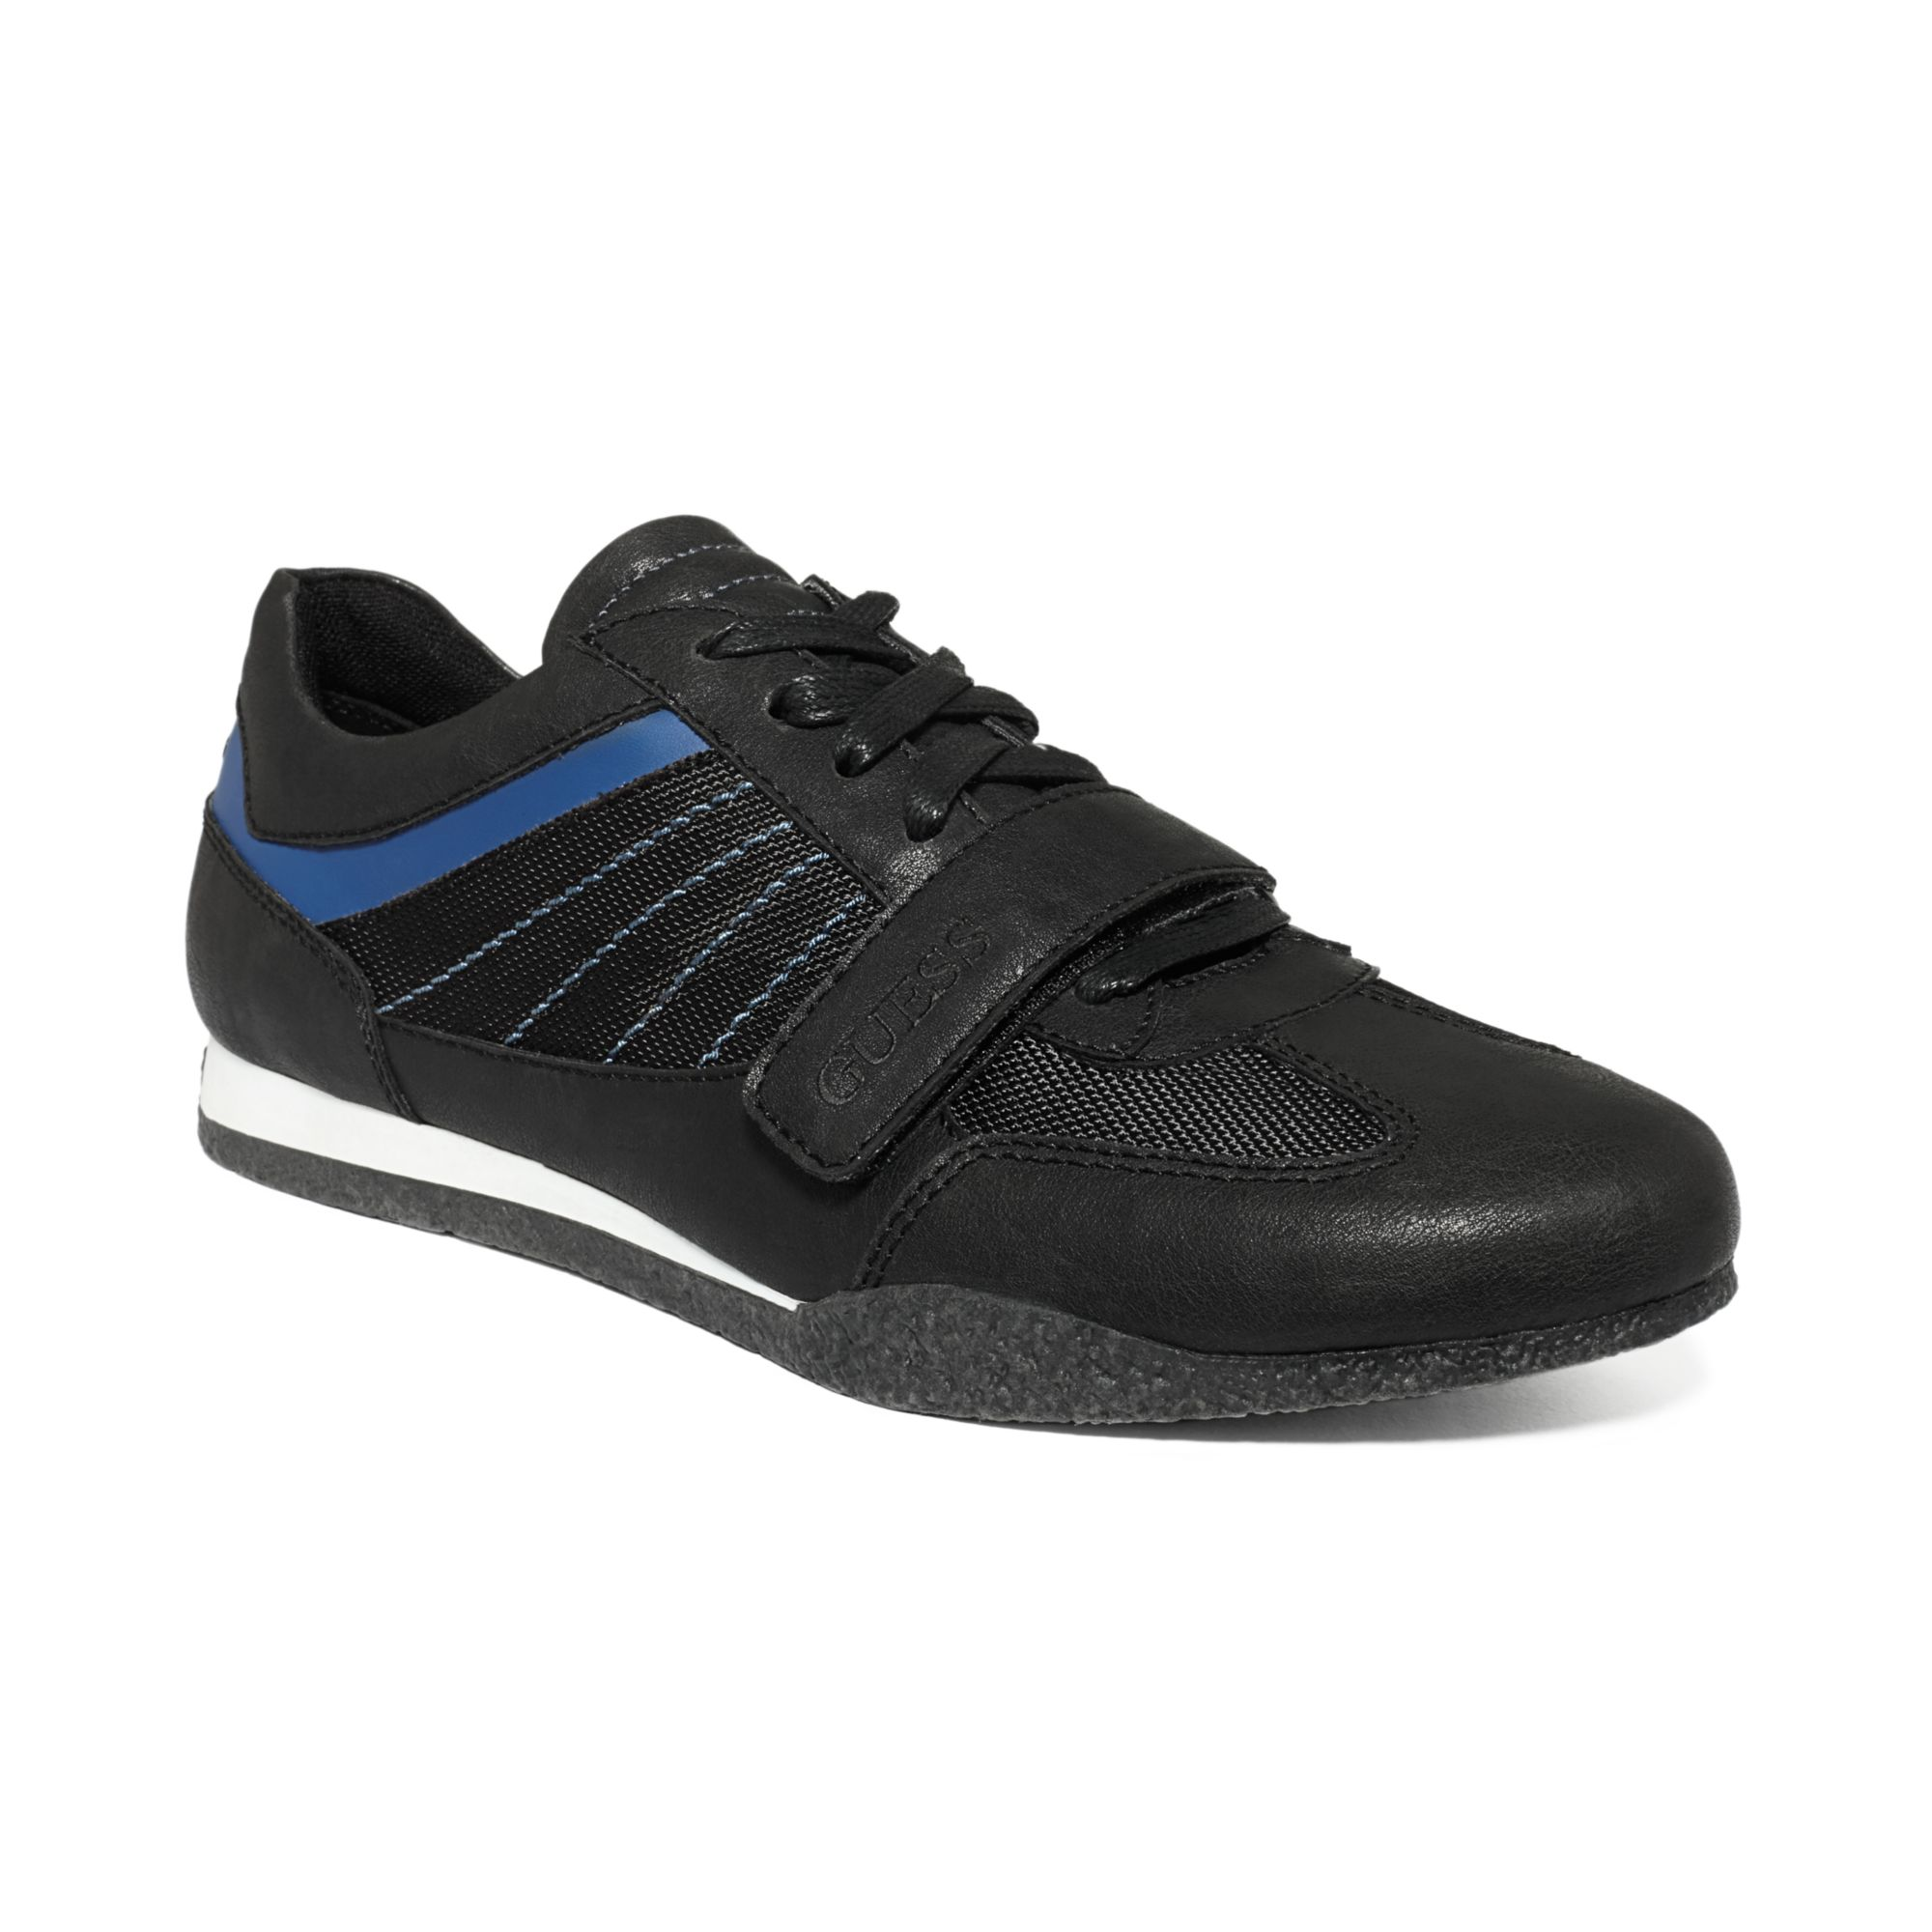 Guess Mens Shoes Arko3 Sneakers in Black for Men (Black/Blue